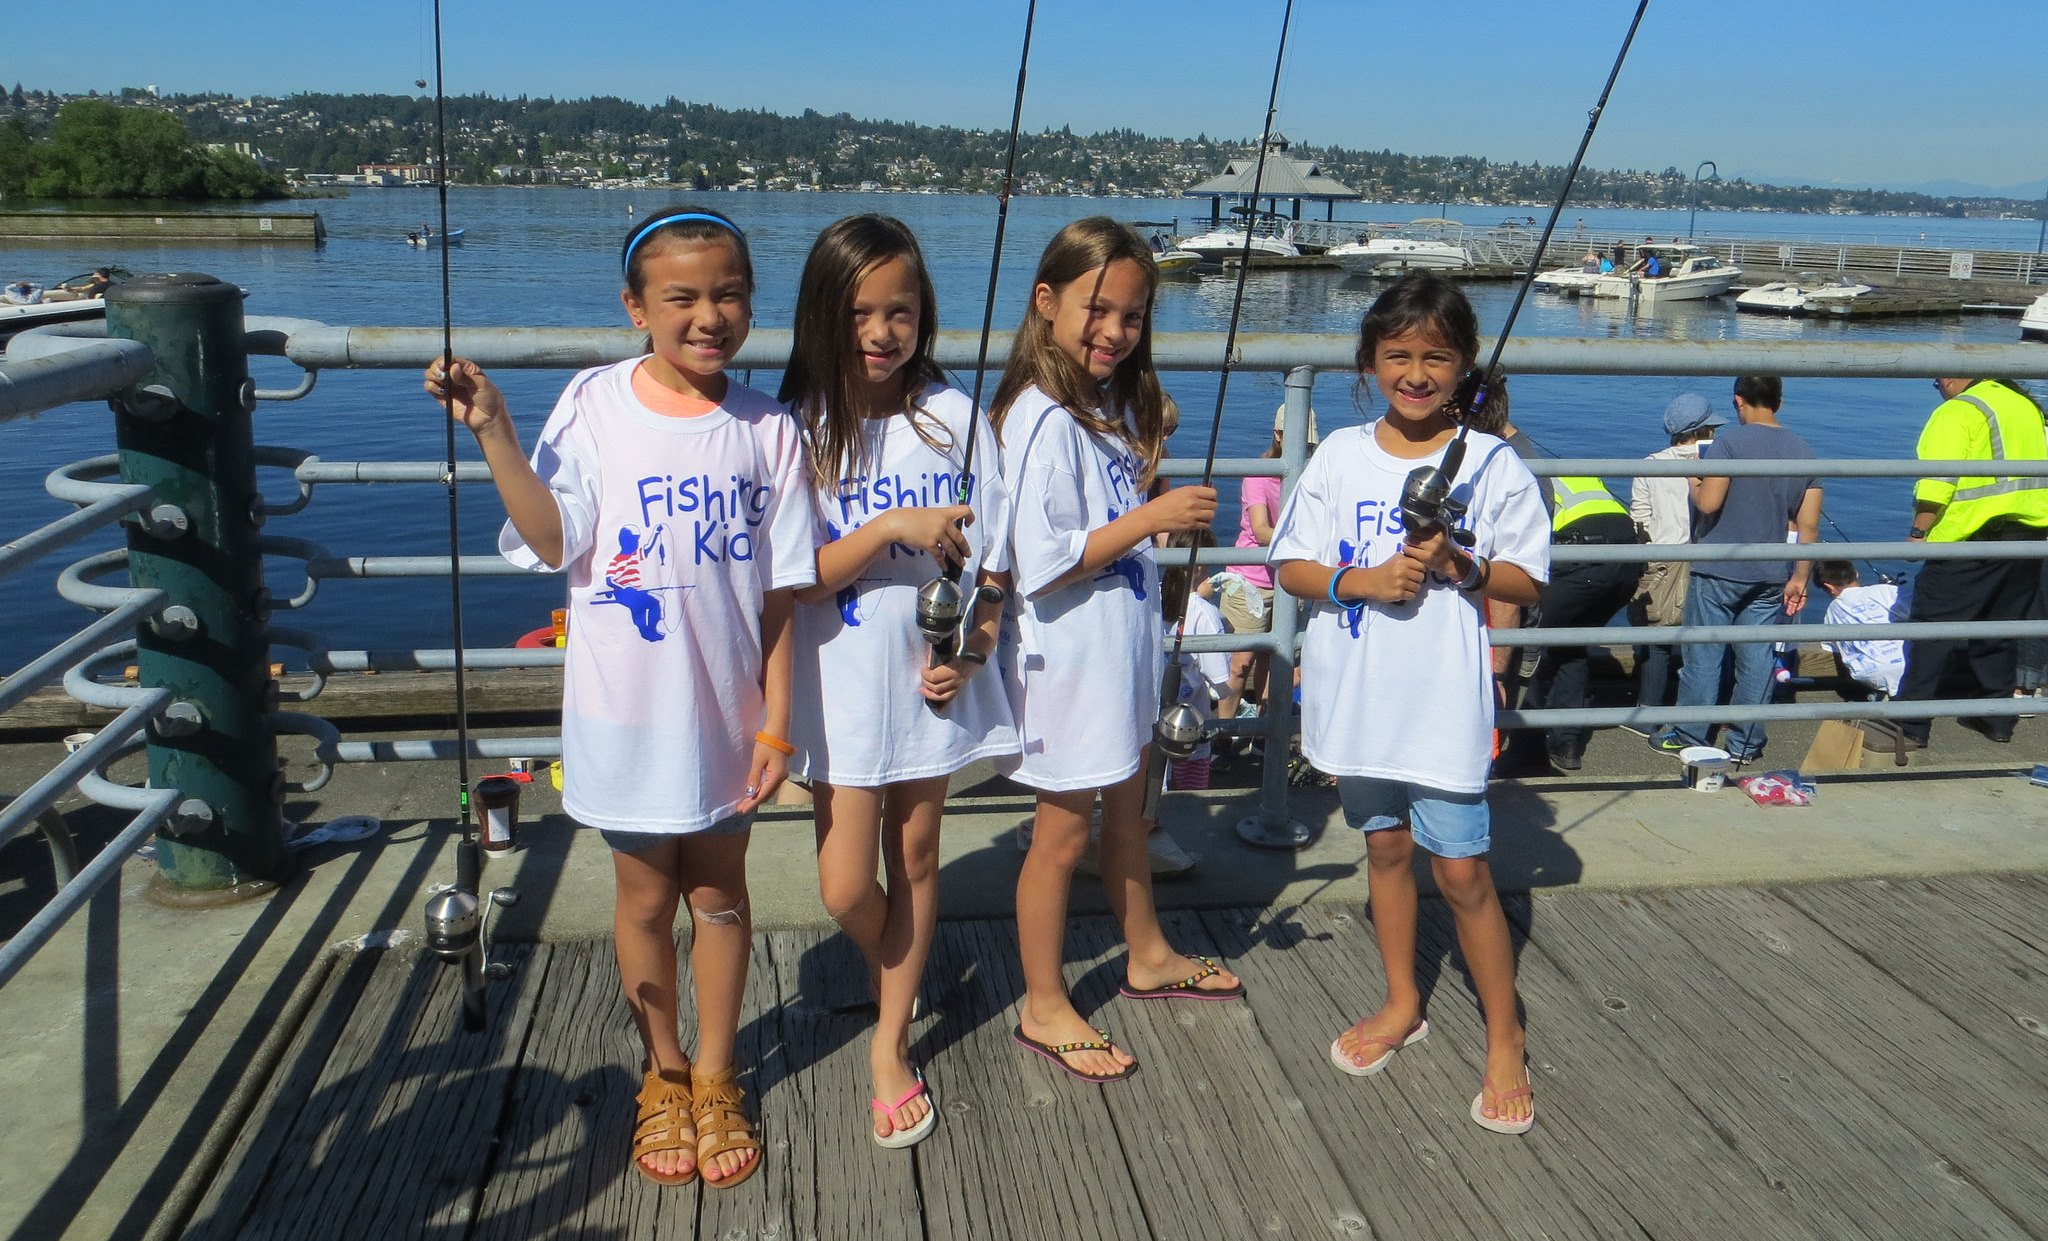 Fishing Kids – Lake Washington (WA)